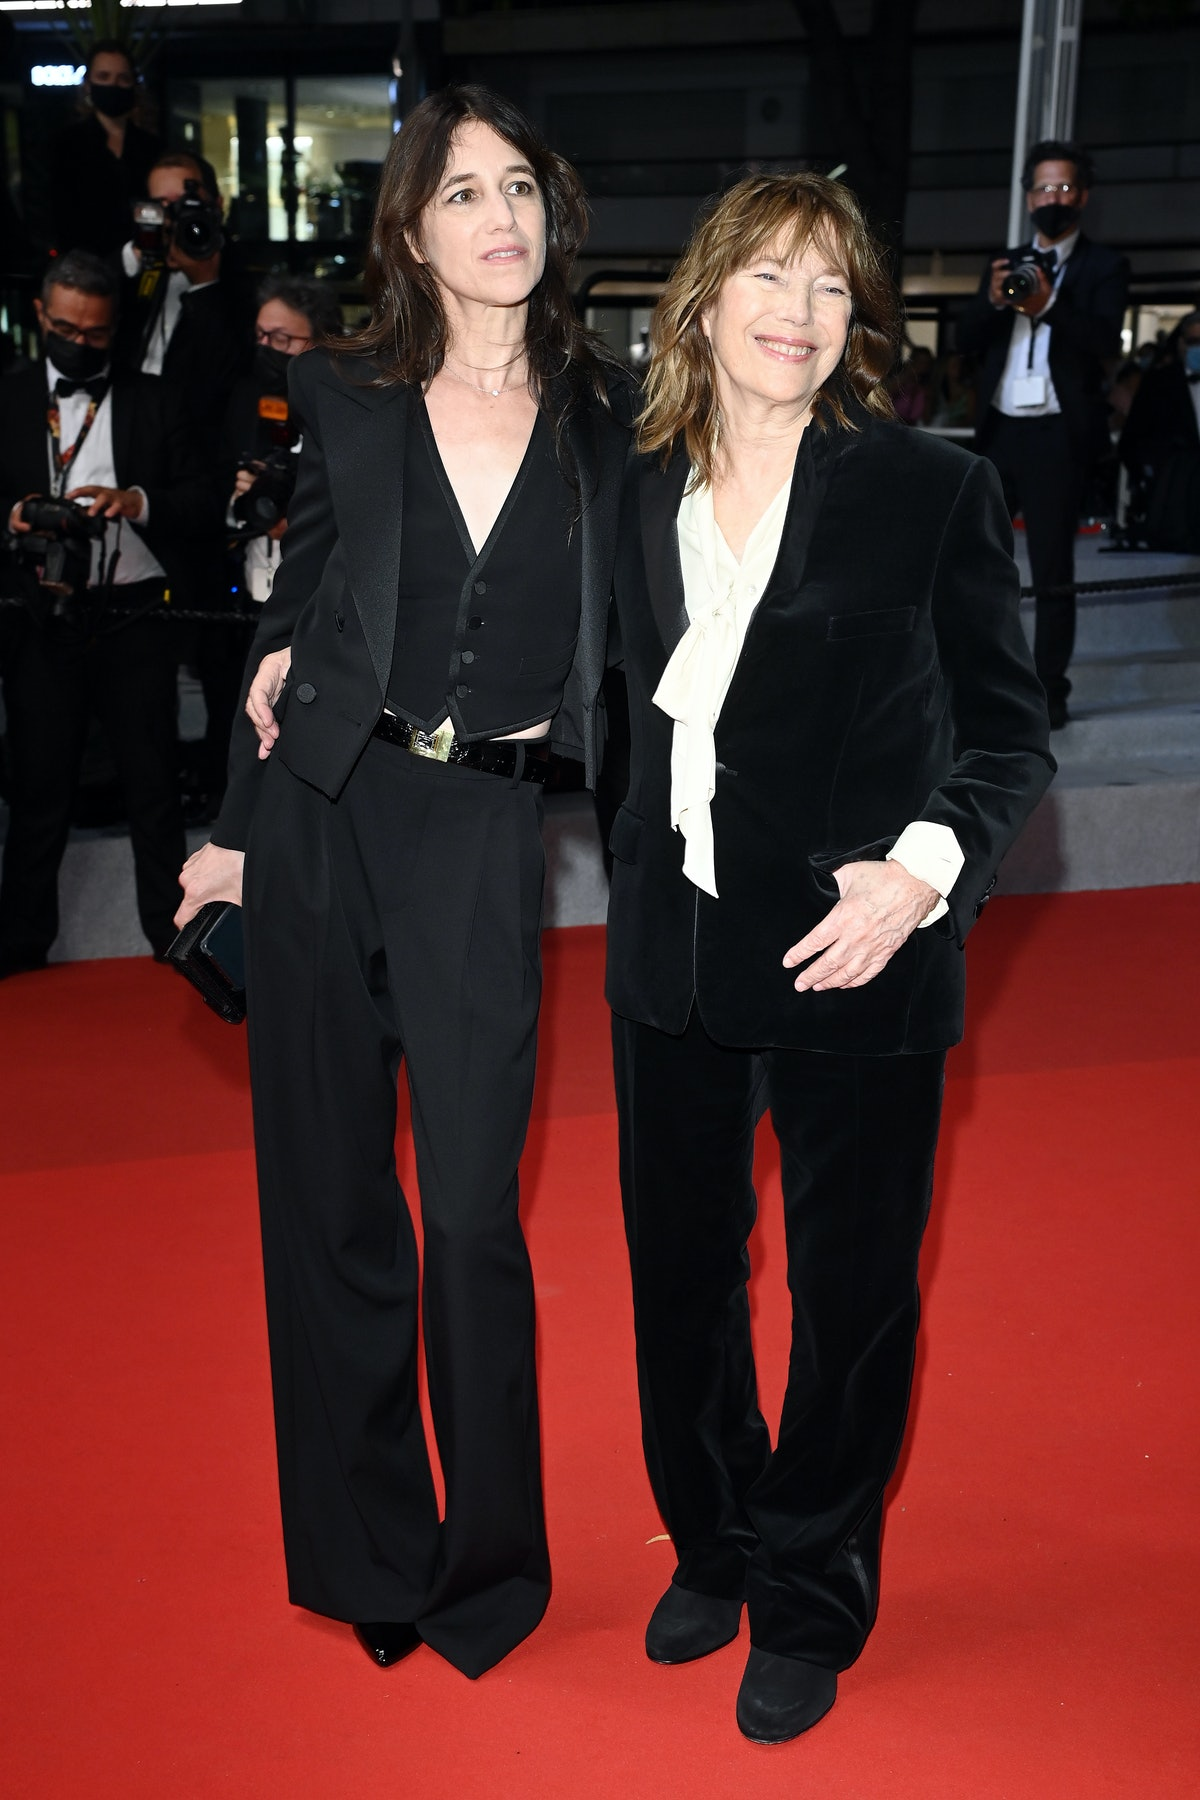 """CANNES, FRANCE - JULY 07: (L-R) Charlotte Gainsbourg and Jane Birkin attend the """"Jane Par Charlotte (Jane By Charlotte)"""" screening during the 74th annual Cannes Film Festival on July 07, 2021 in Cannes, France. (Photo by Daniele Venturelli/WireImage)"""